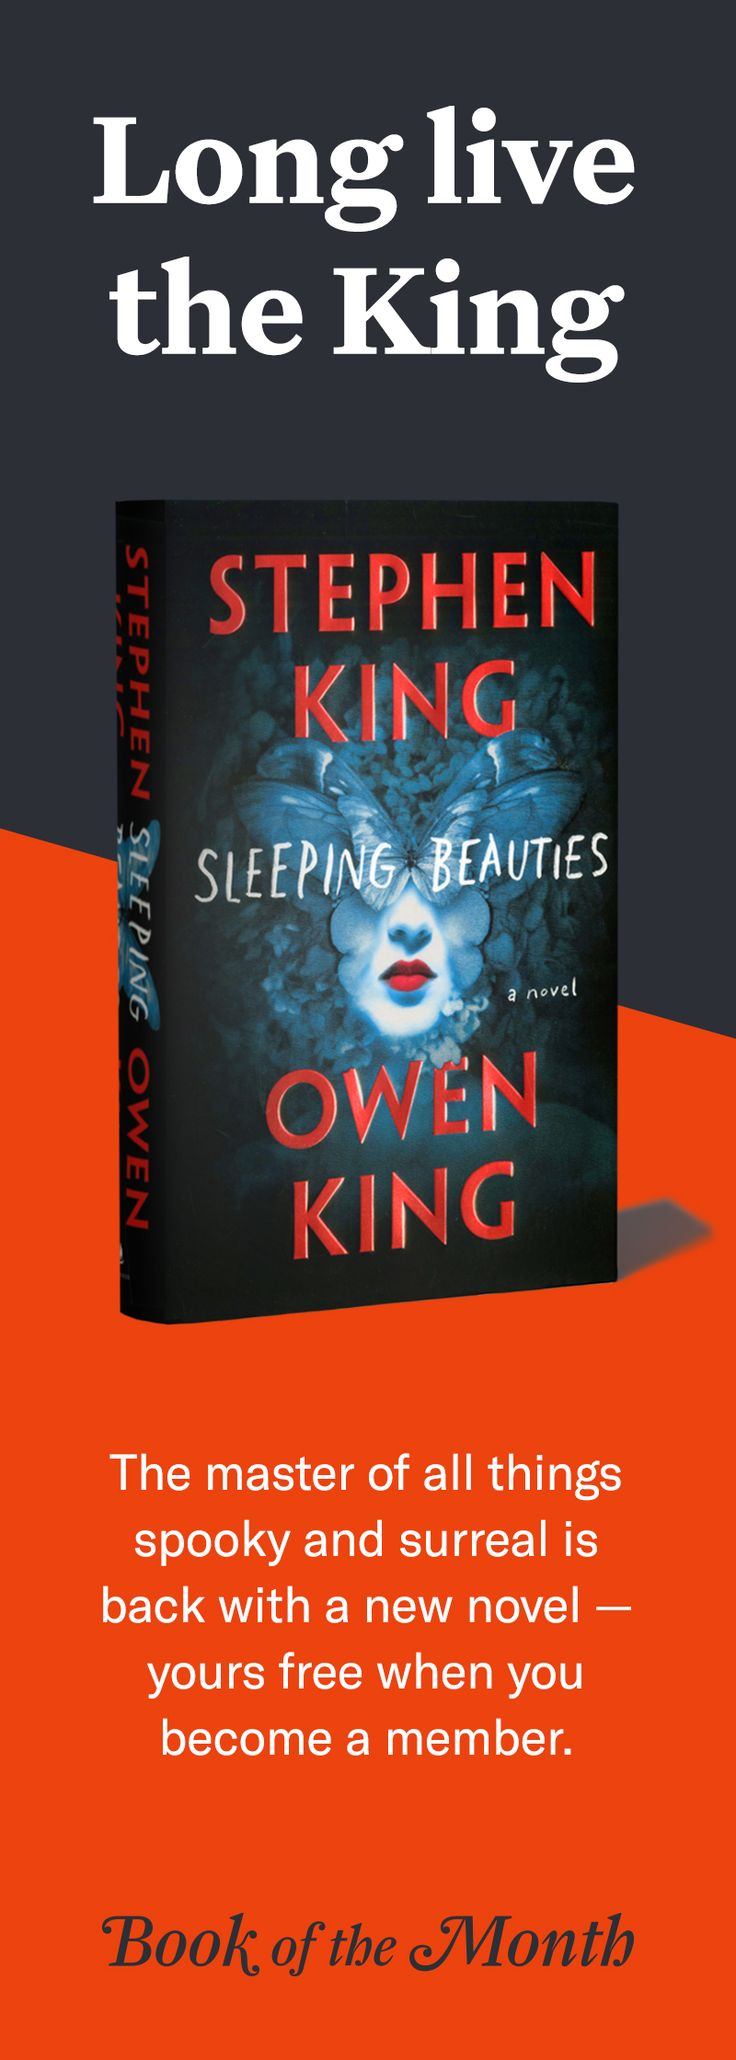 "Get ""Sleeping Beauties"" free when you join Book of the Month with code KING. Offer expires 10/21. Head to bookofthemonth.com/king to learn more."